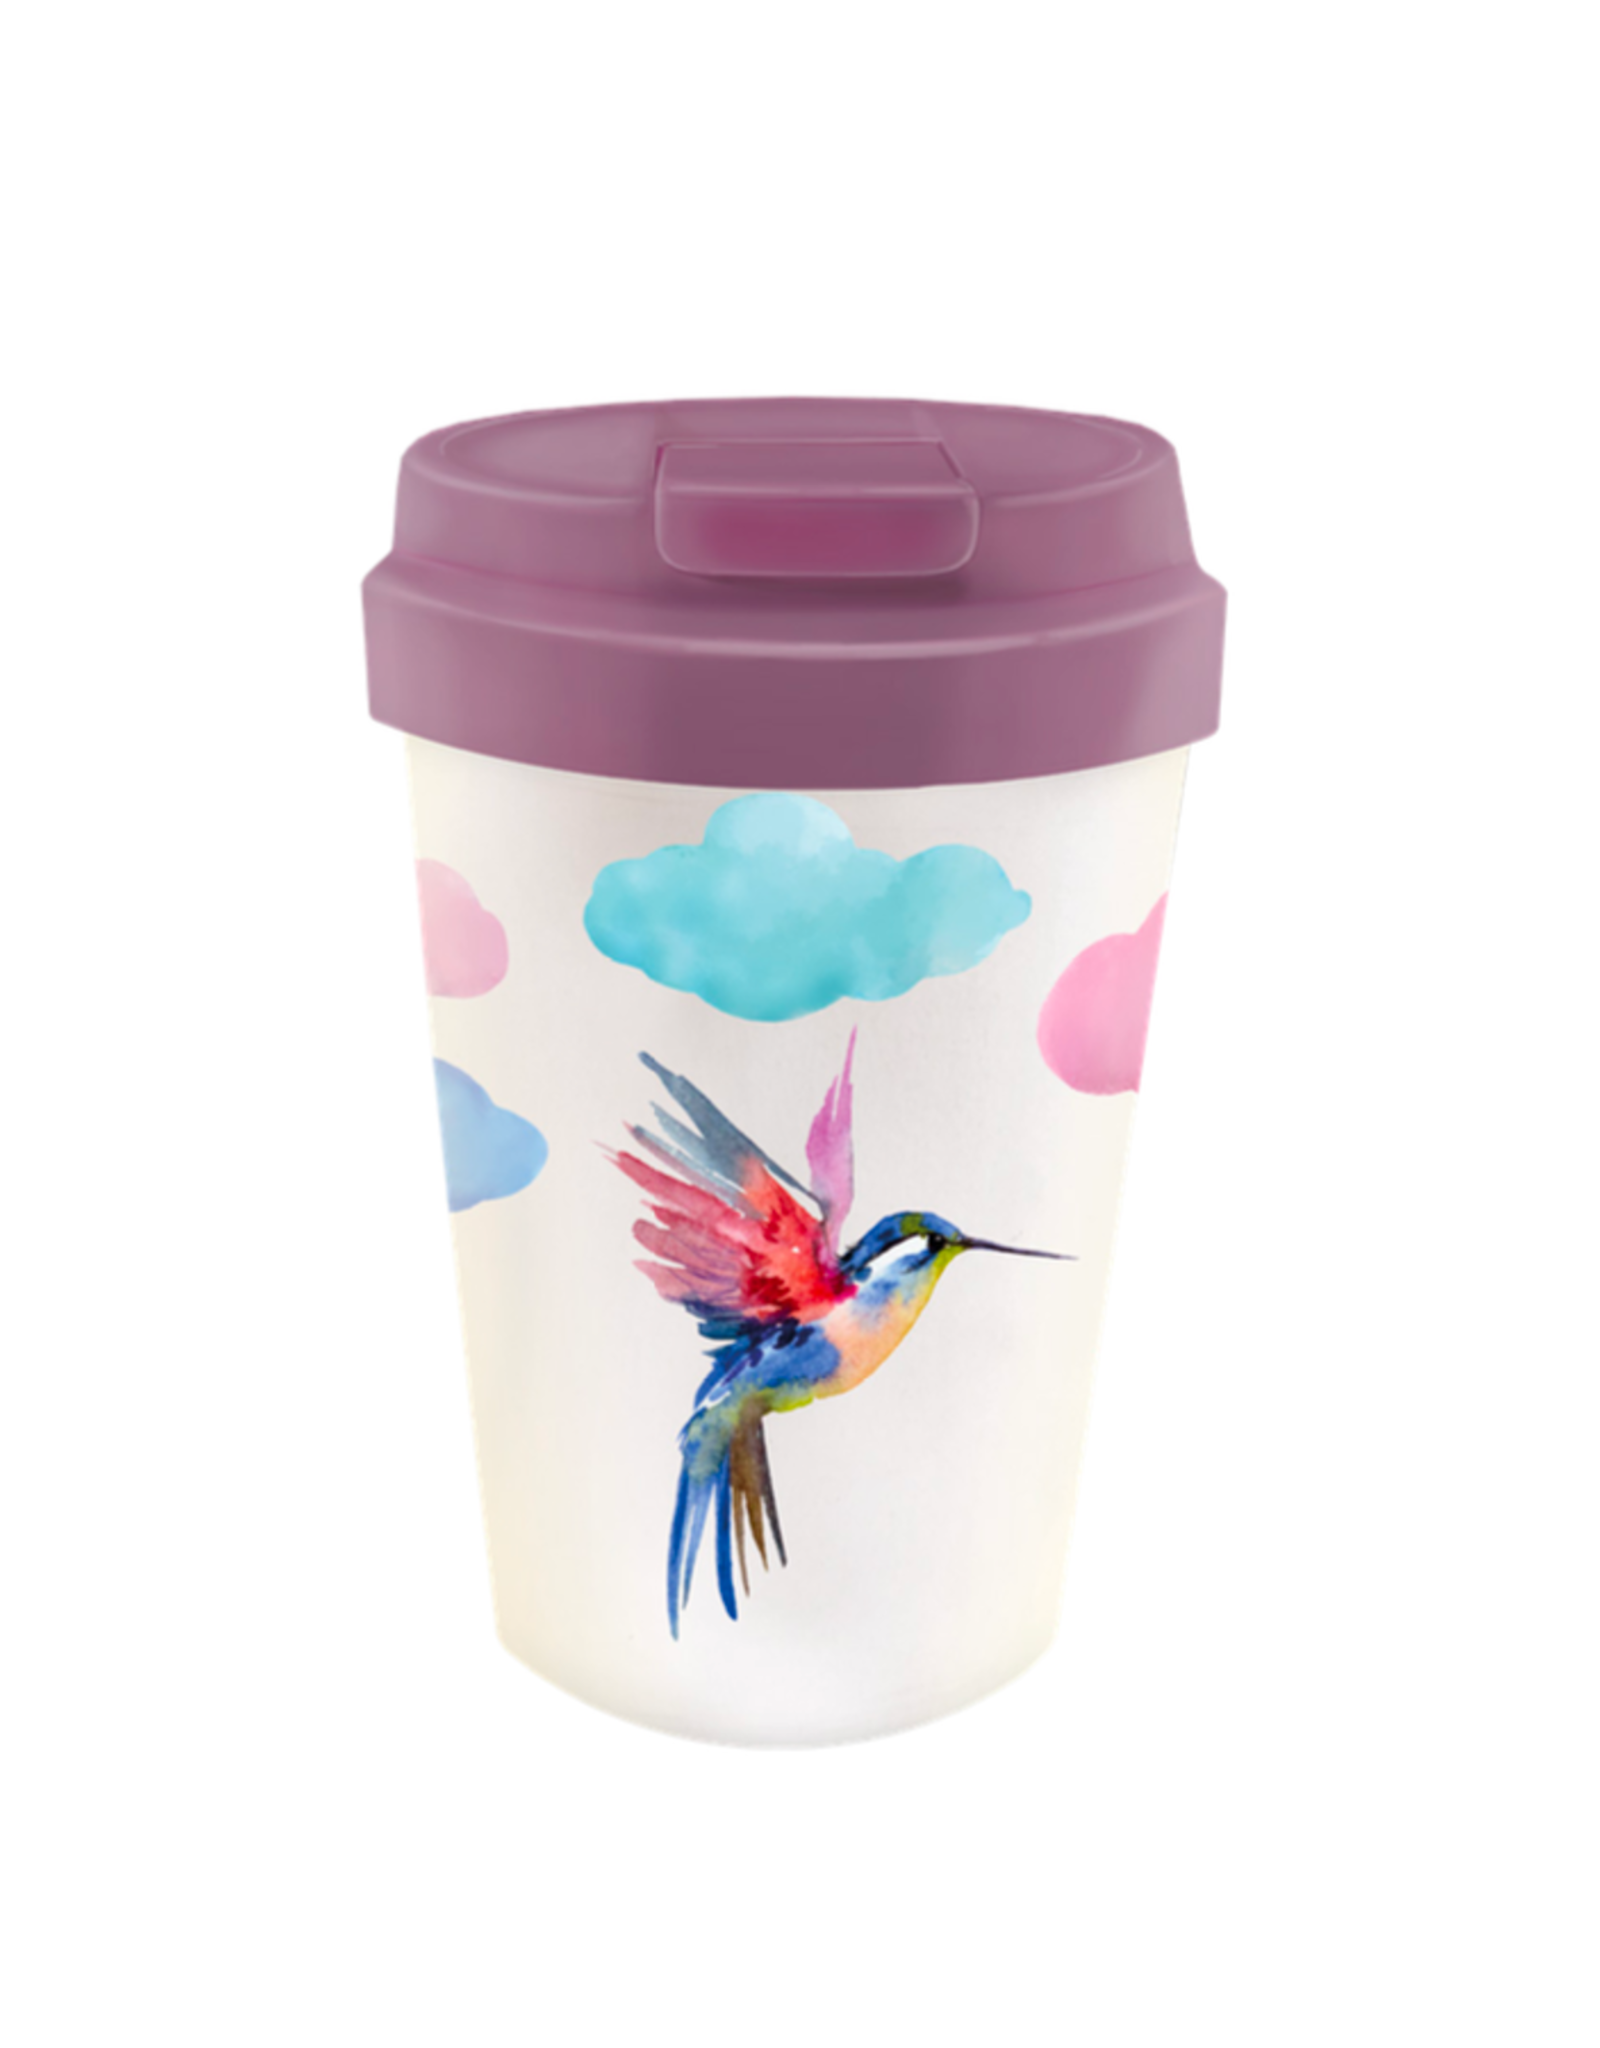 easy cup with watercolor bird